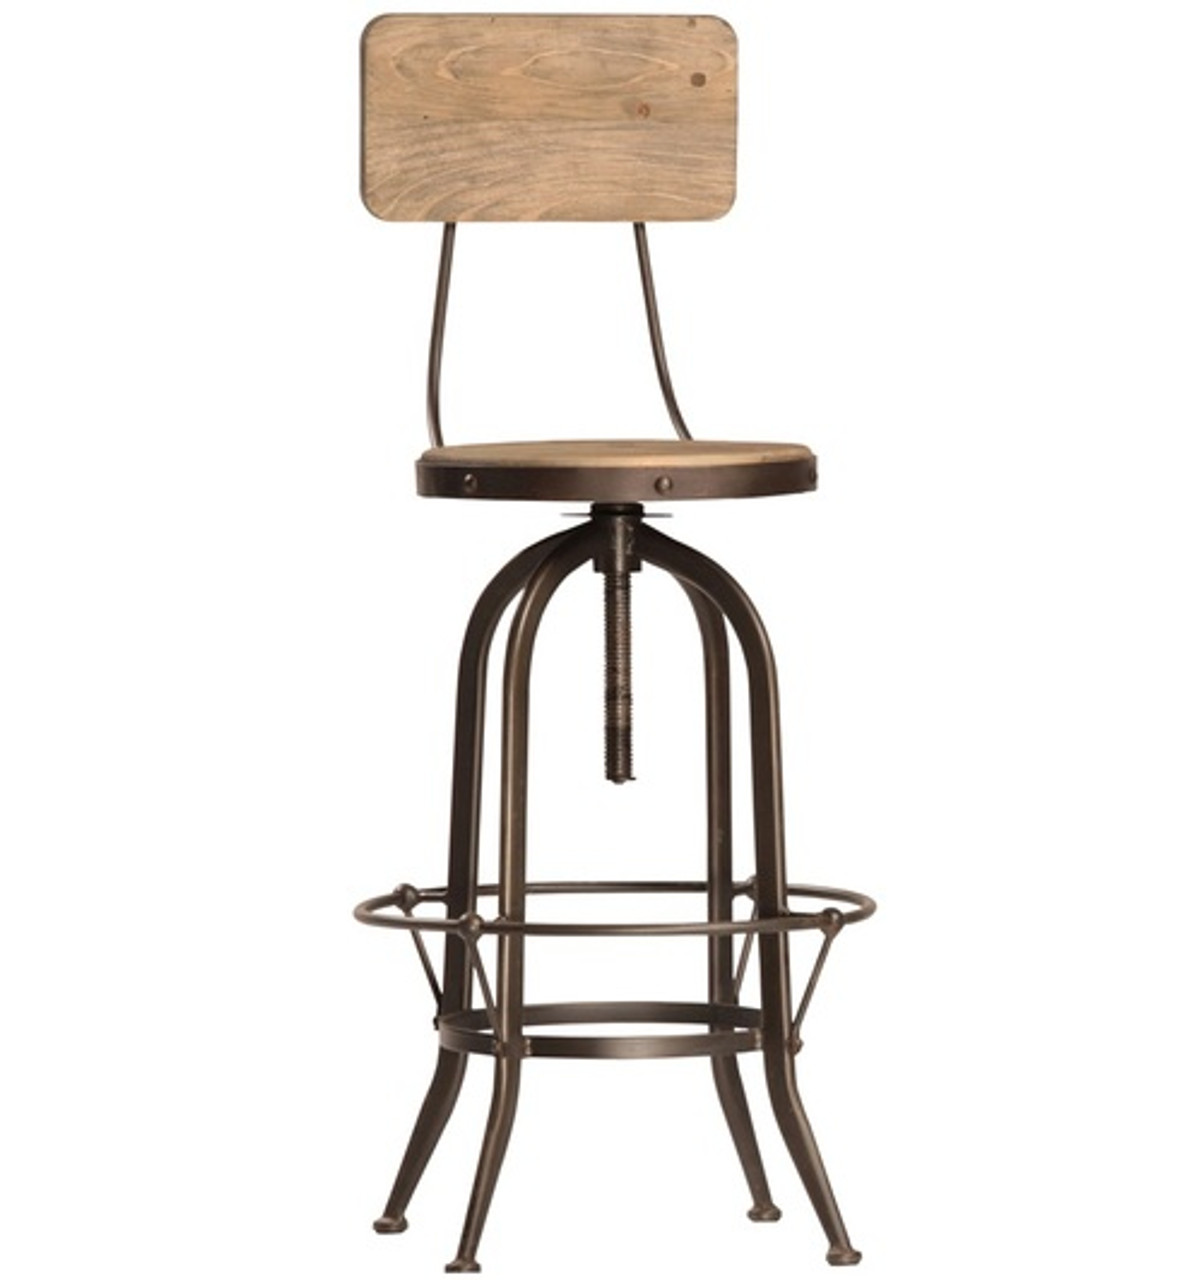 Industrial Bar Chair  sc 1 st  Zin Home & Industrial Gear Bar Stool | Zin Home islam-shia.org